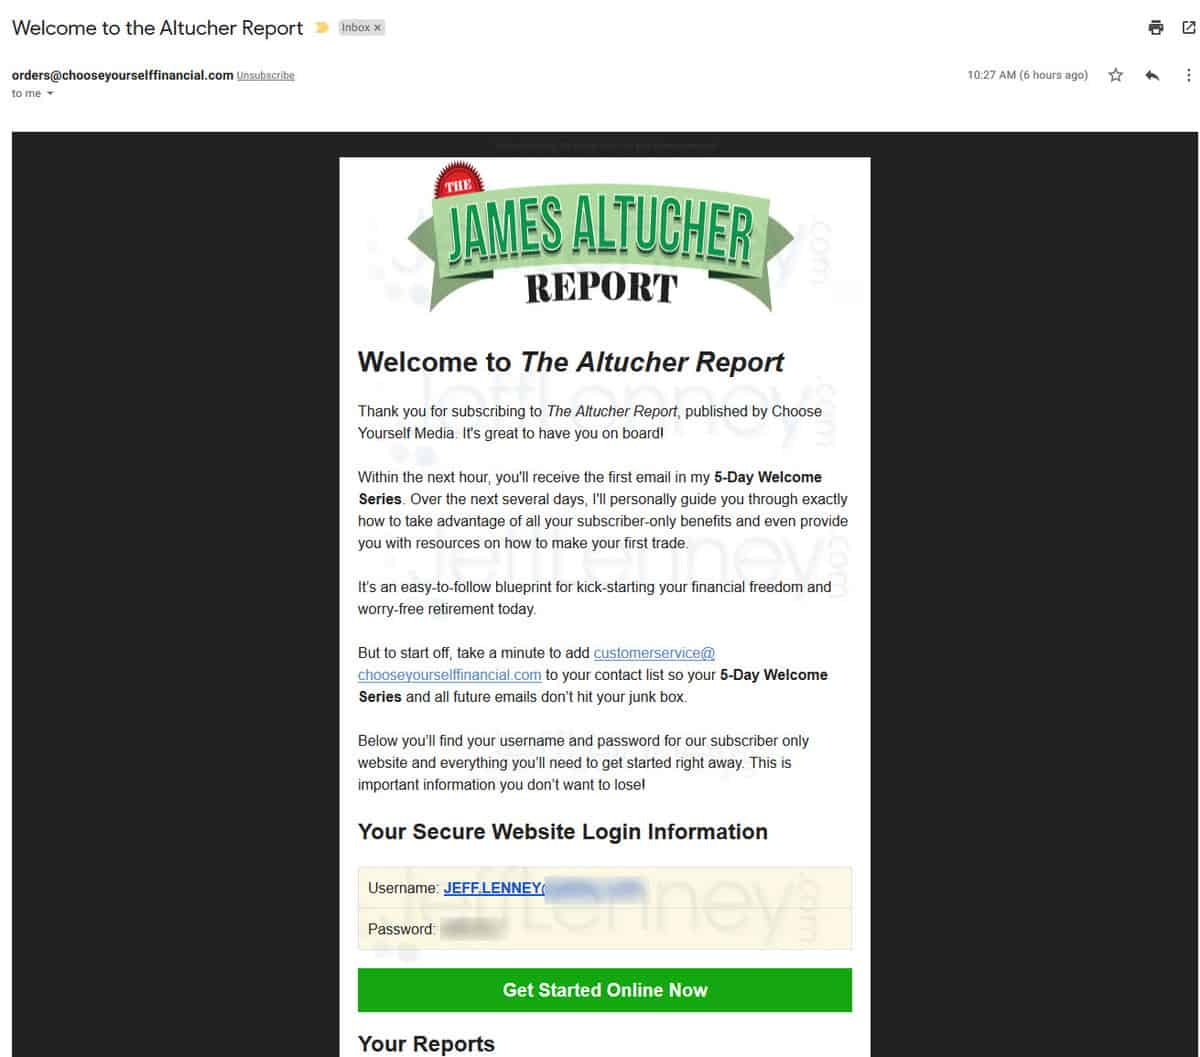 The Altucher Report Welcome Email